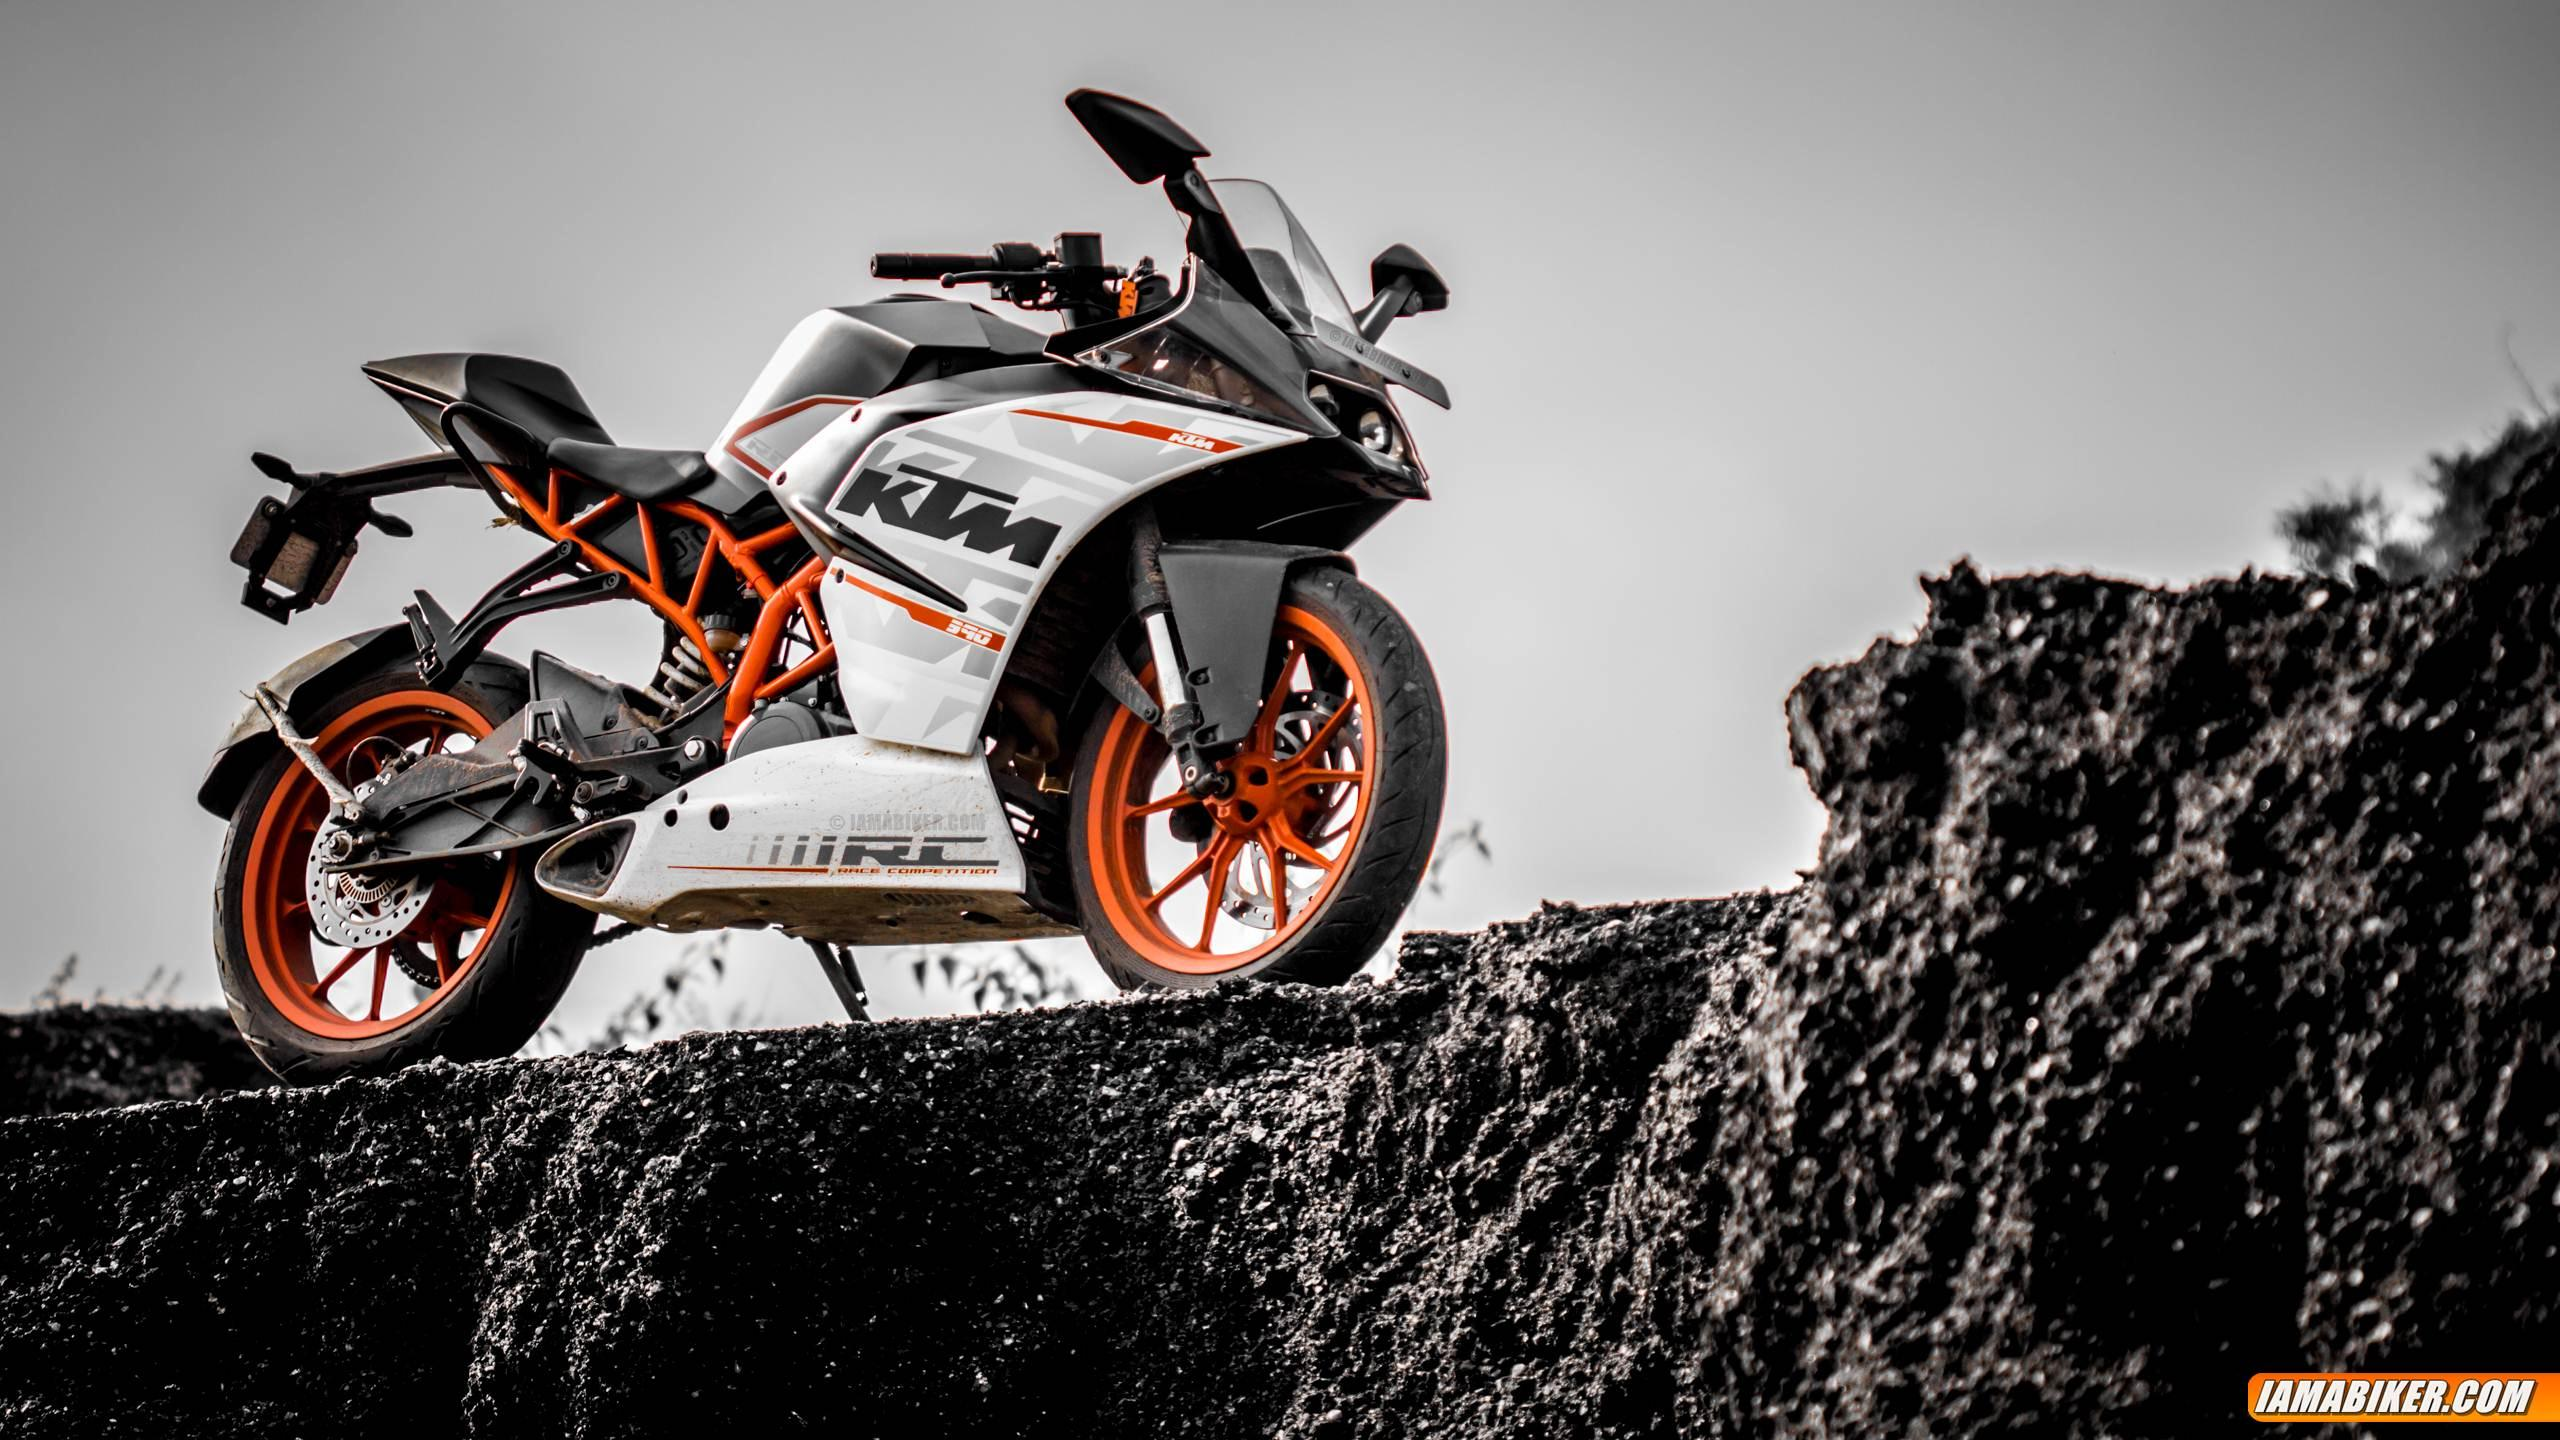 KTM RC 390 wallpapers - 4